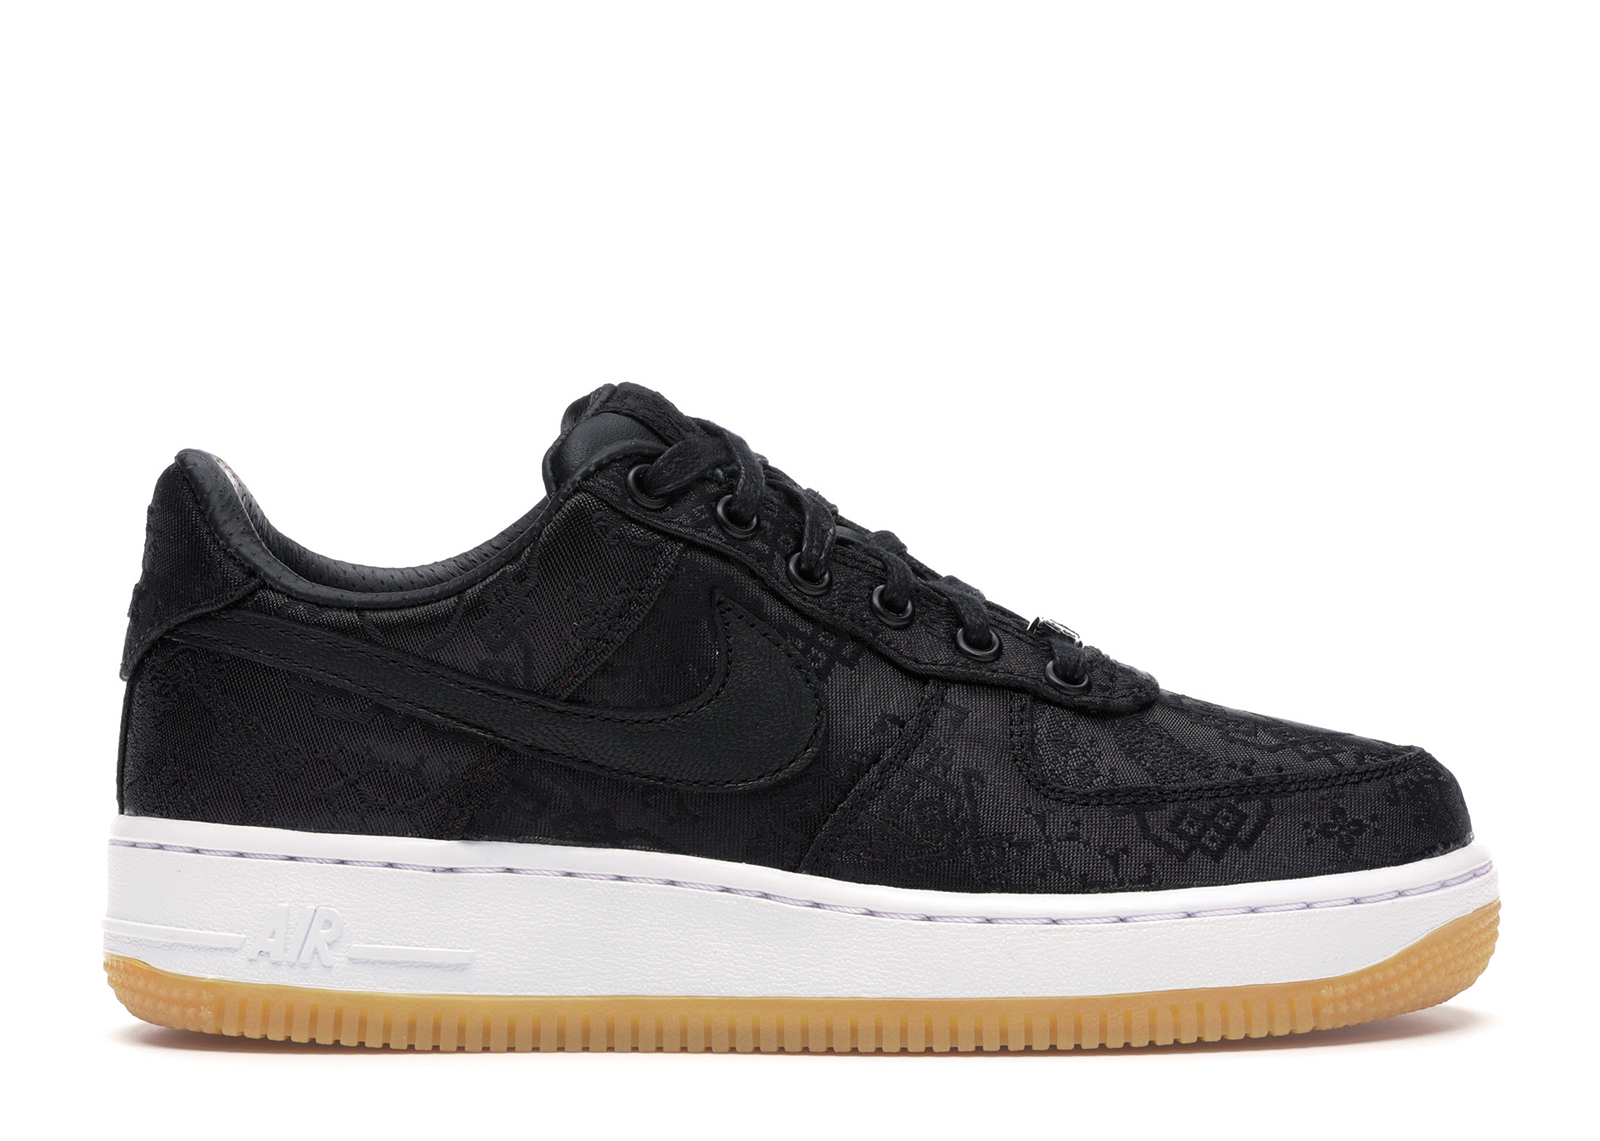 Nike Air Force 1 Low fragment design x